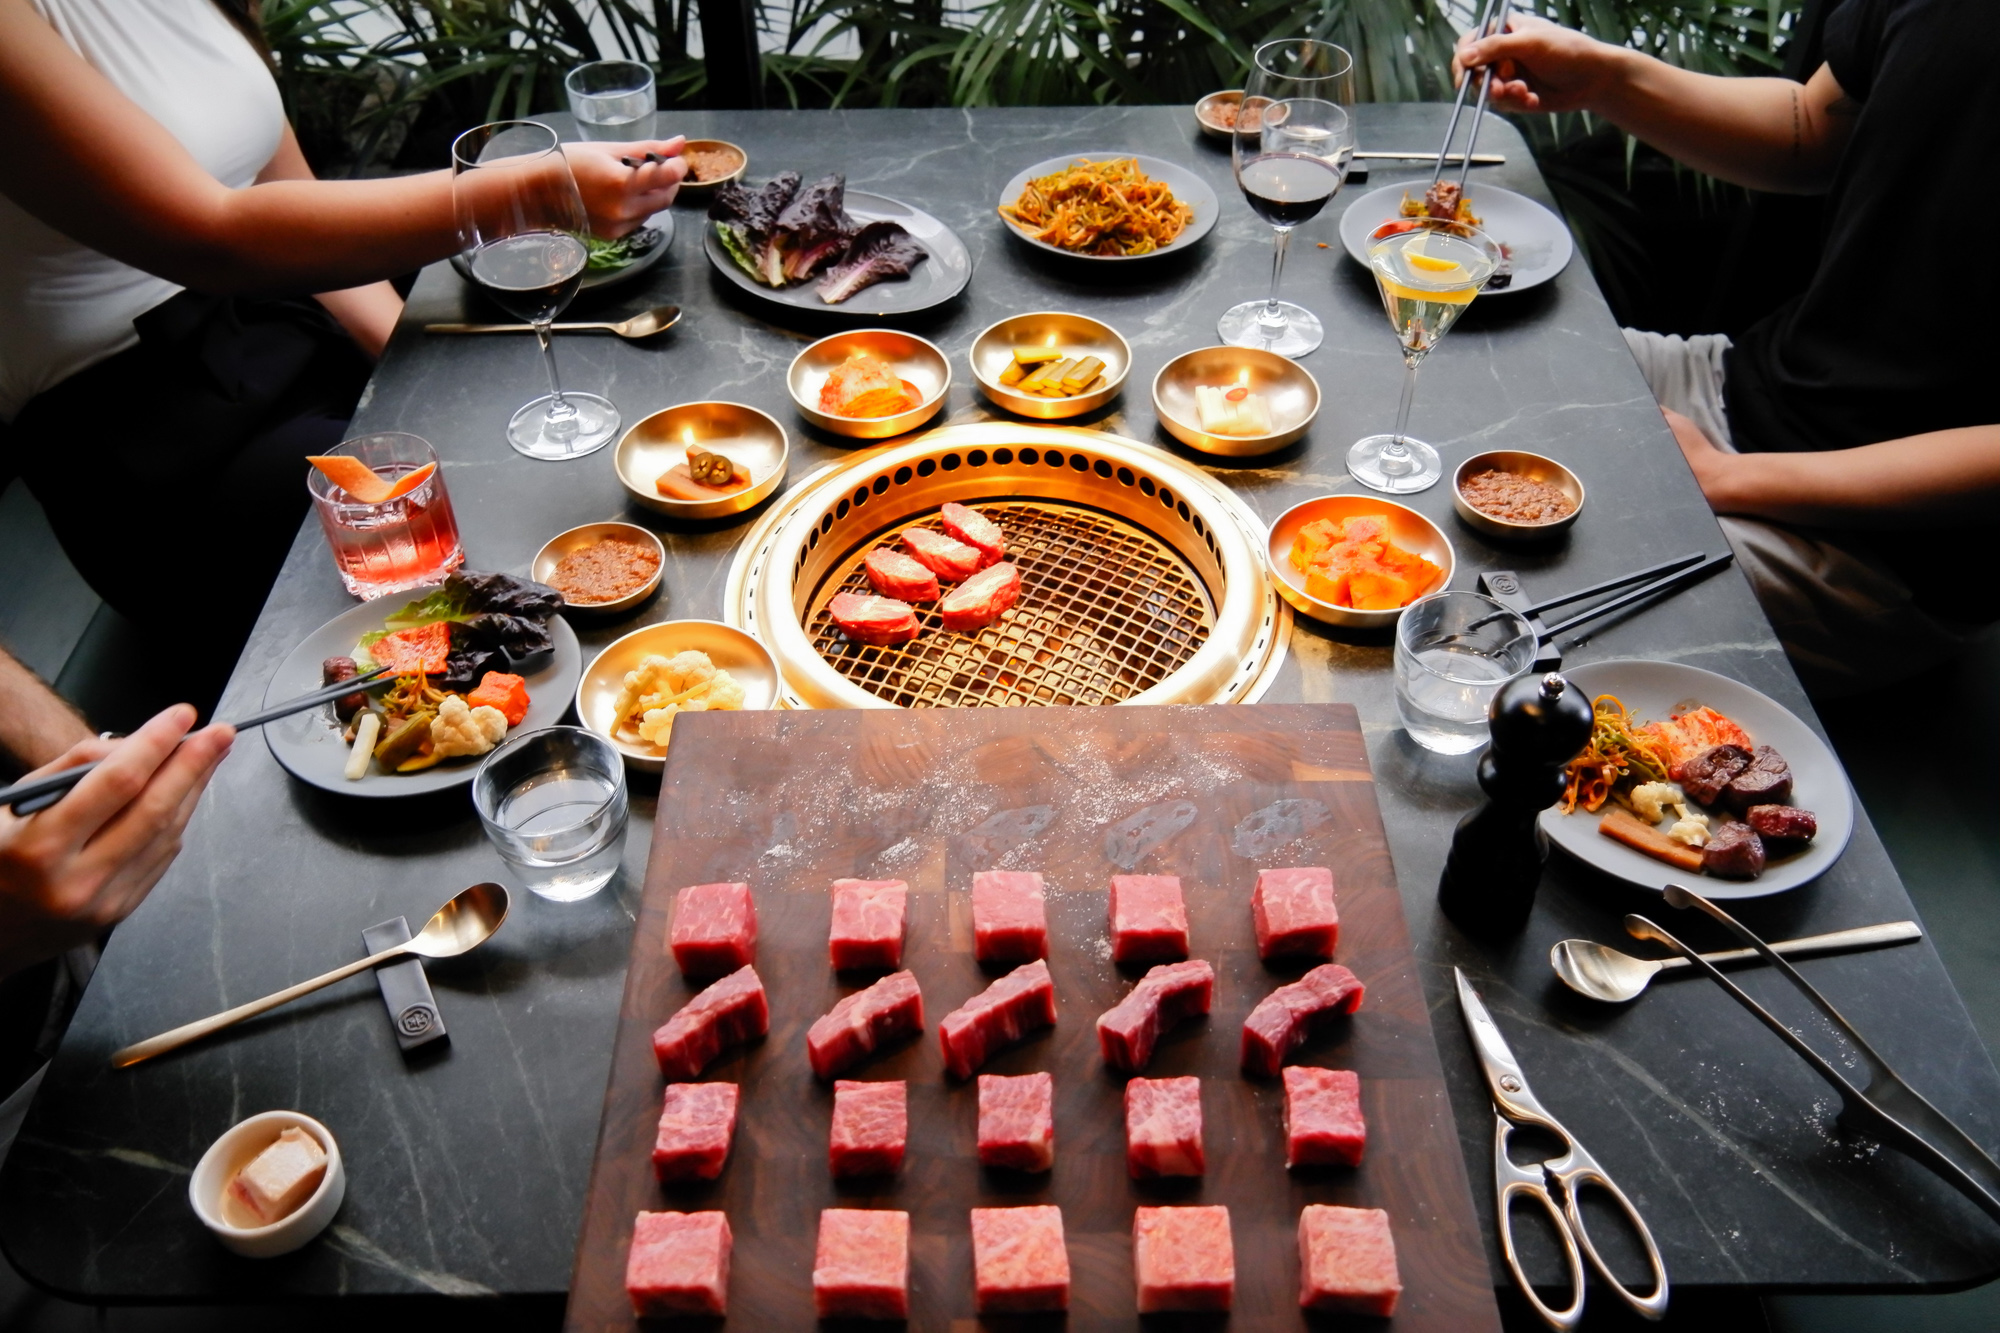 A table with an inset grill surrounded by banchan